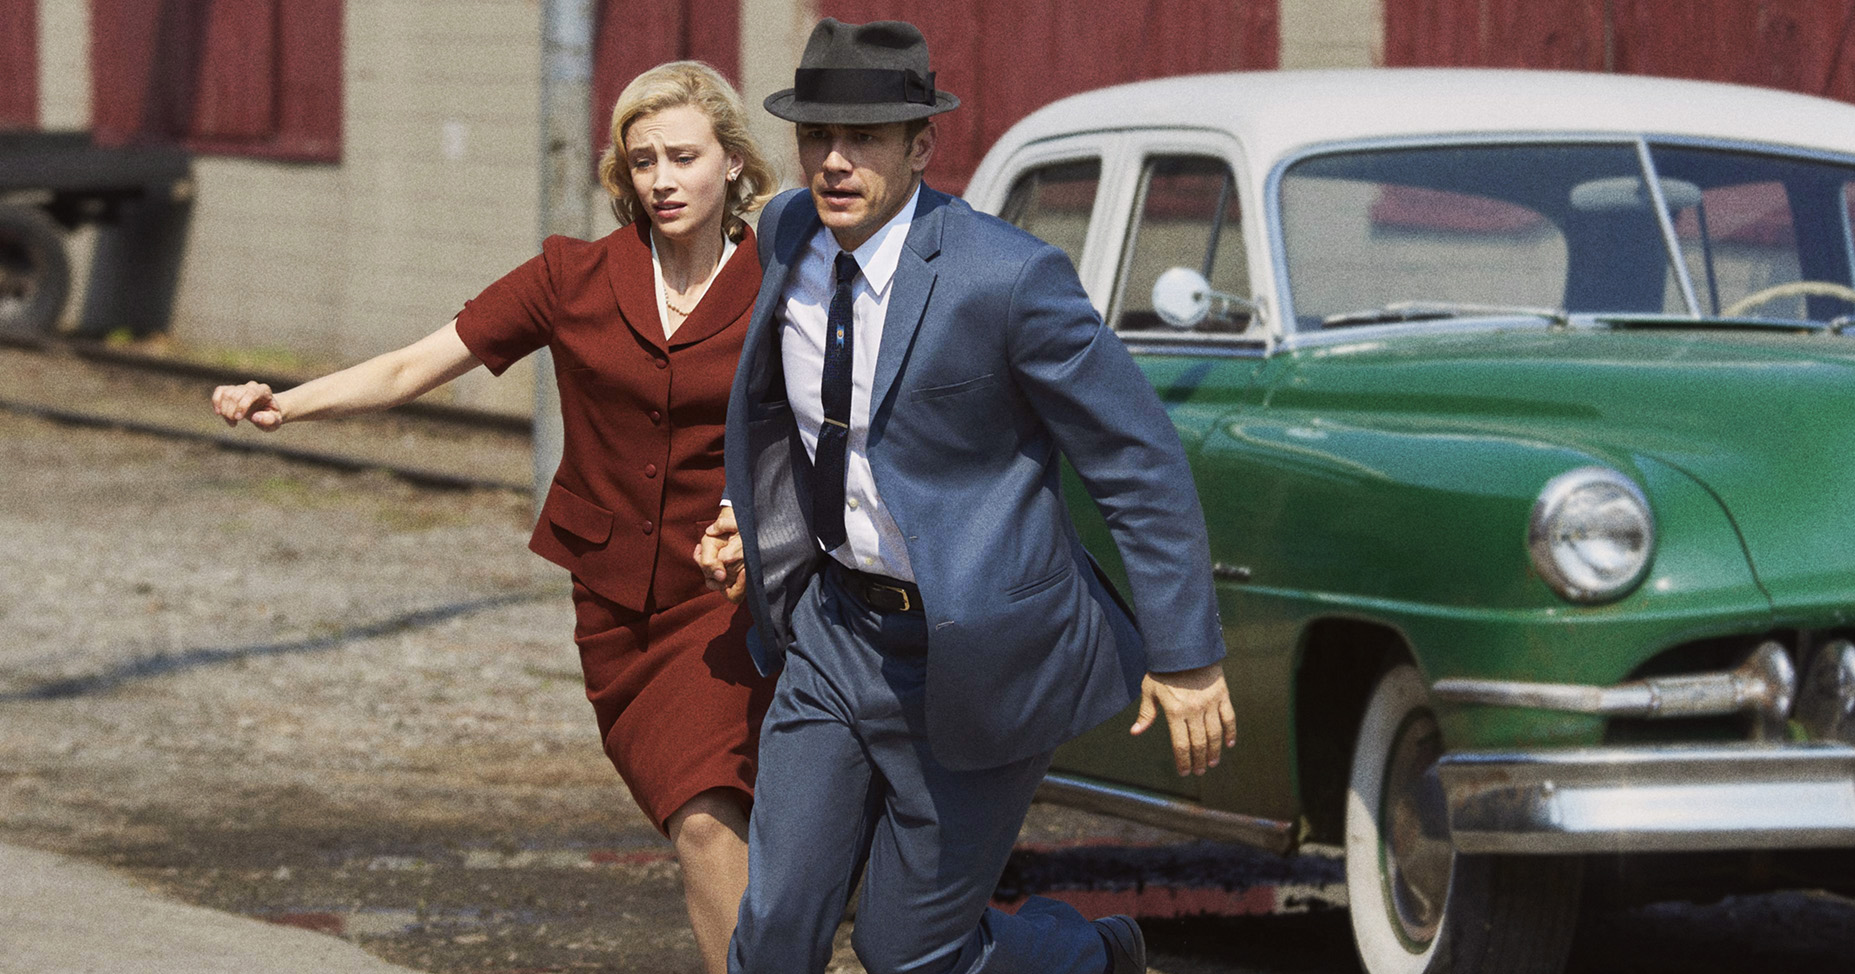 Jake Epping (James Franco) and Sadie Dunhill (Sarah Gadon) racing to prevent the Kennedy assassination in 11.22.63 (2016)